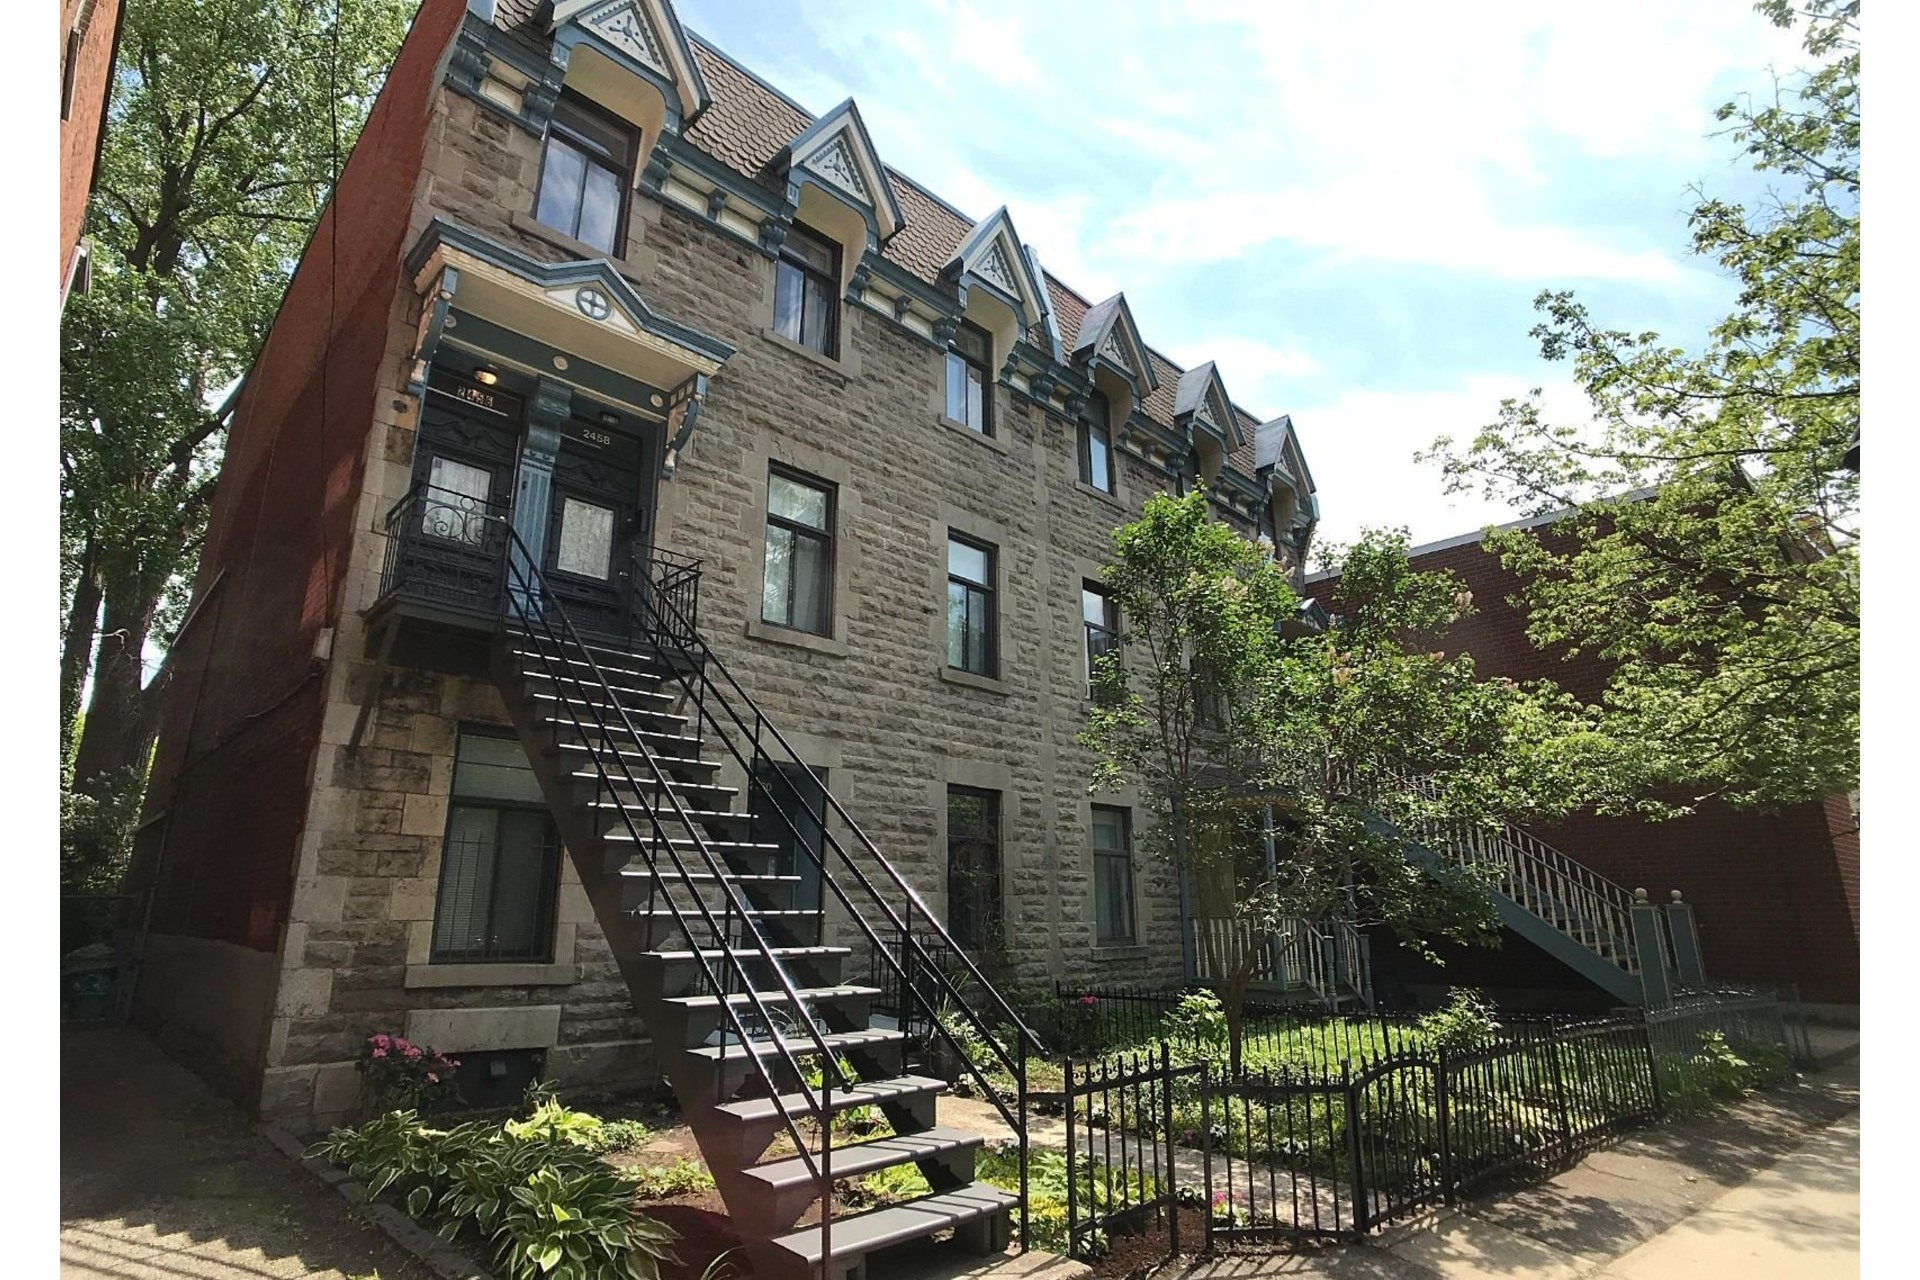 image 22 - Triplex For sale Le Sud-Ouest Montréal  - 5 rooms